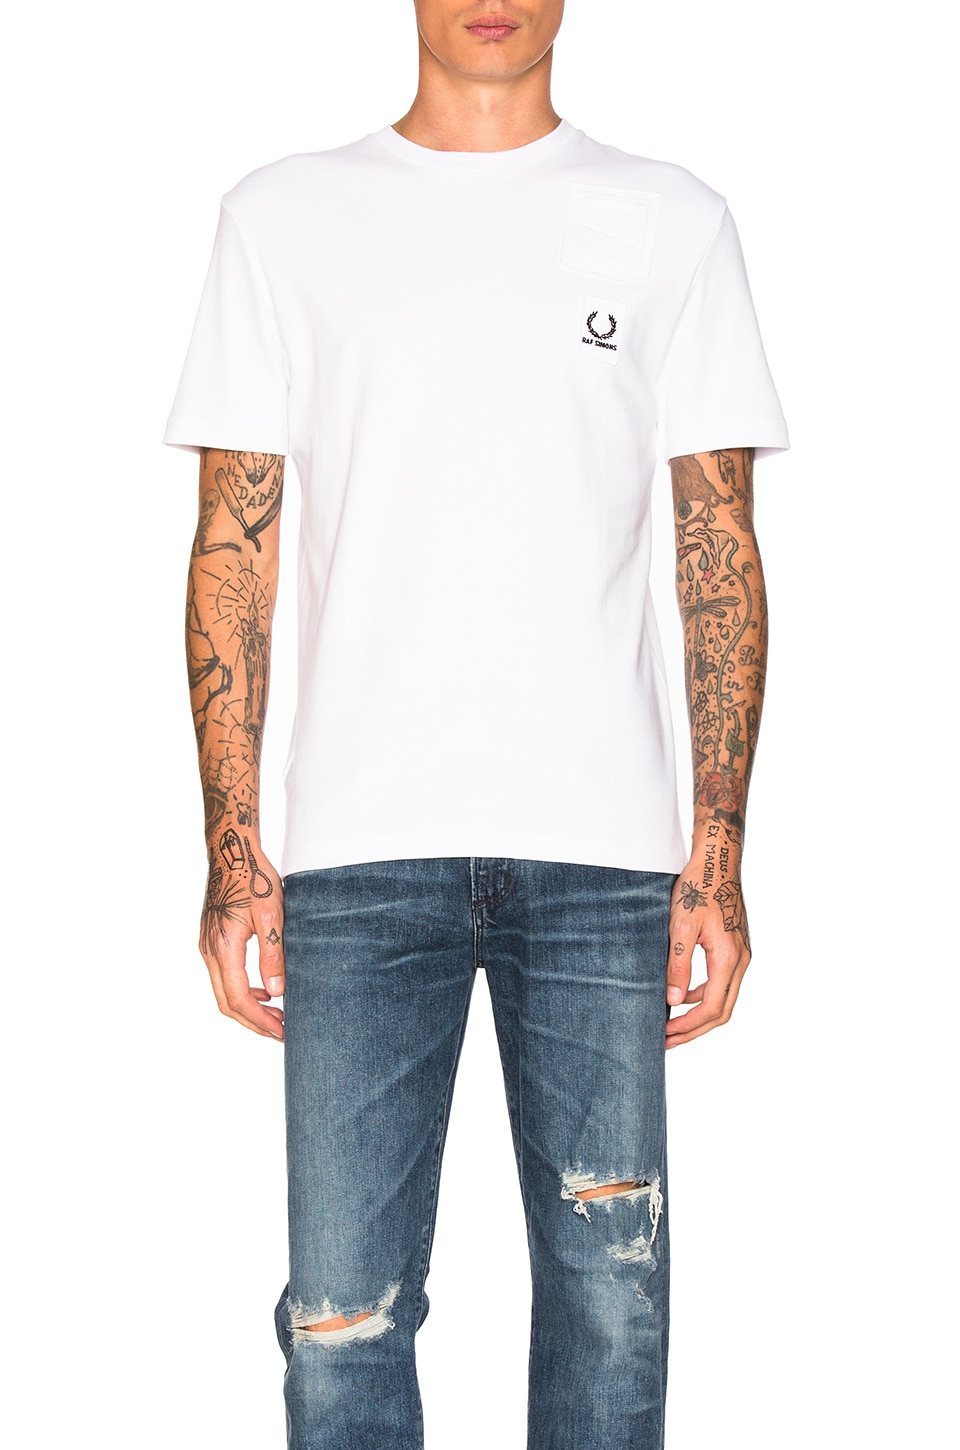 Denim Pocket Tee by Fred Perry x Raf Simons